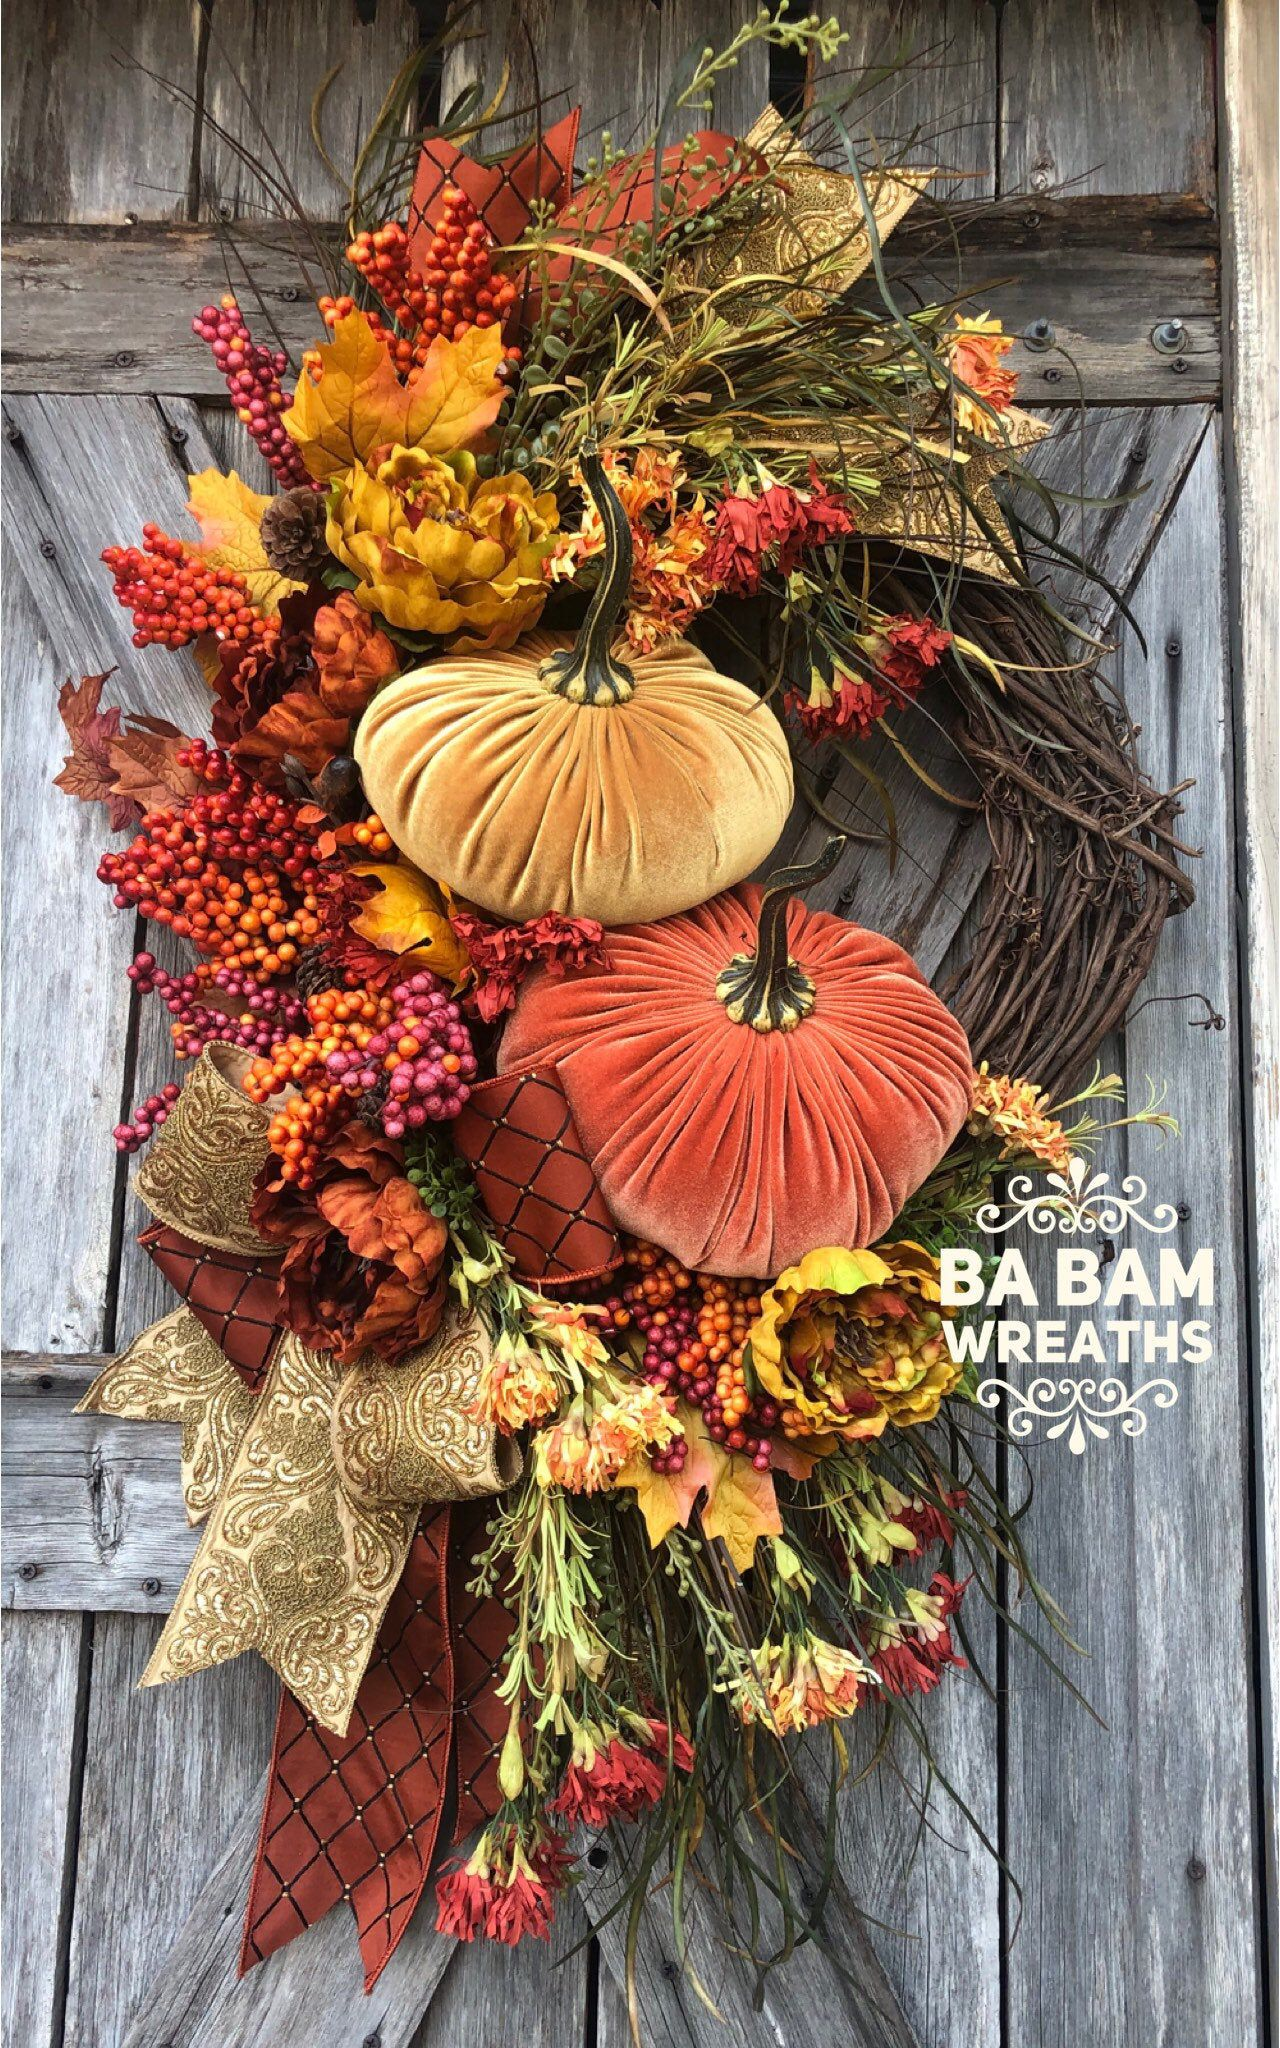 Fall Wreath, Fall Swag, Autumn Swag, Autumn Wreath, Rustic Fall Wreath, Halloween Wreath, XL Fall Wreath images